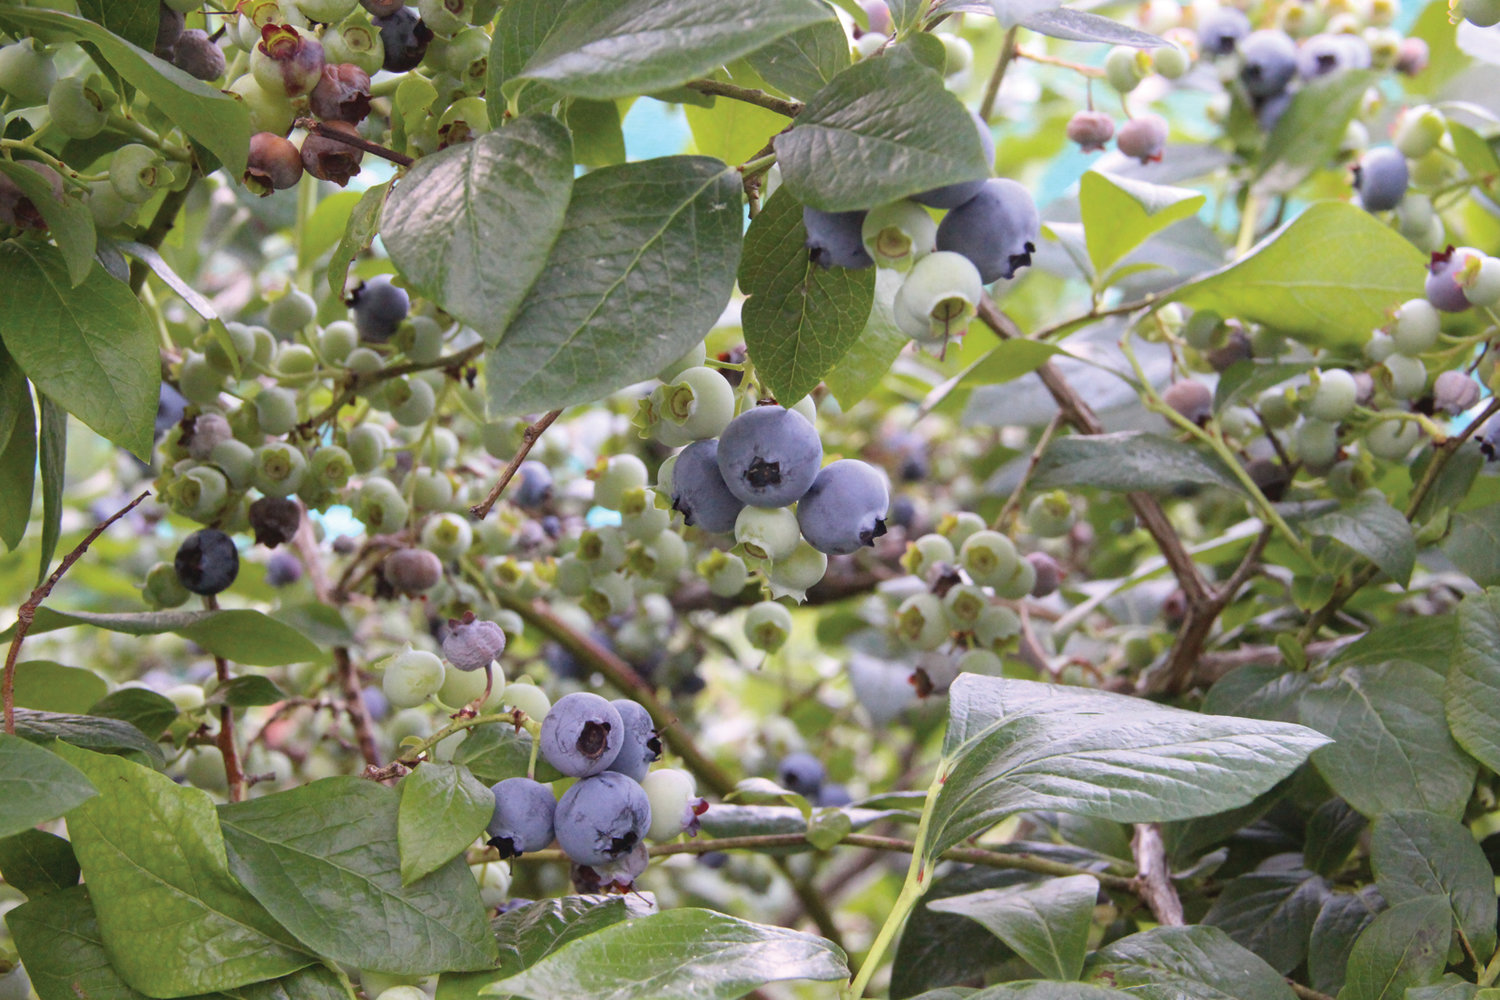 PLENTIFUL: There's a profusion of berries at the farm … easy picking for those of all ages.